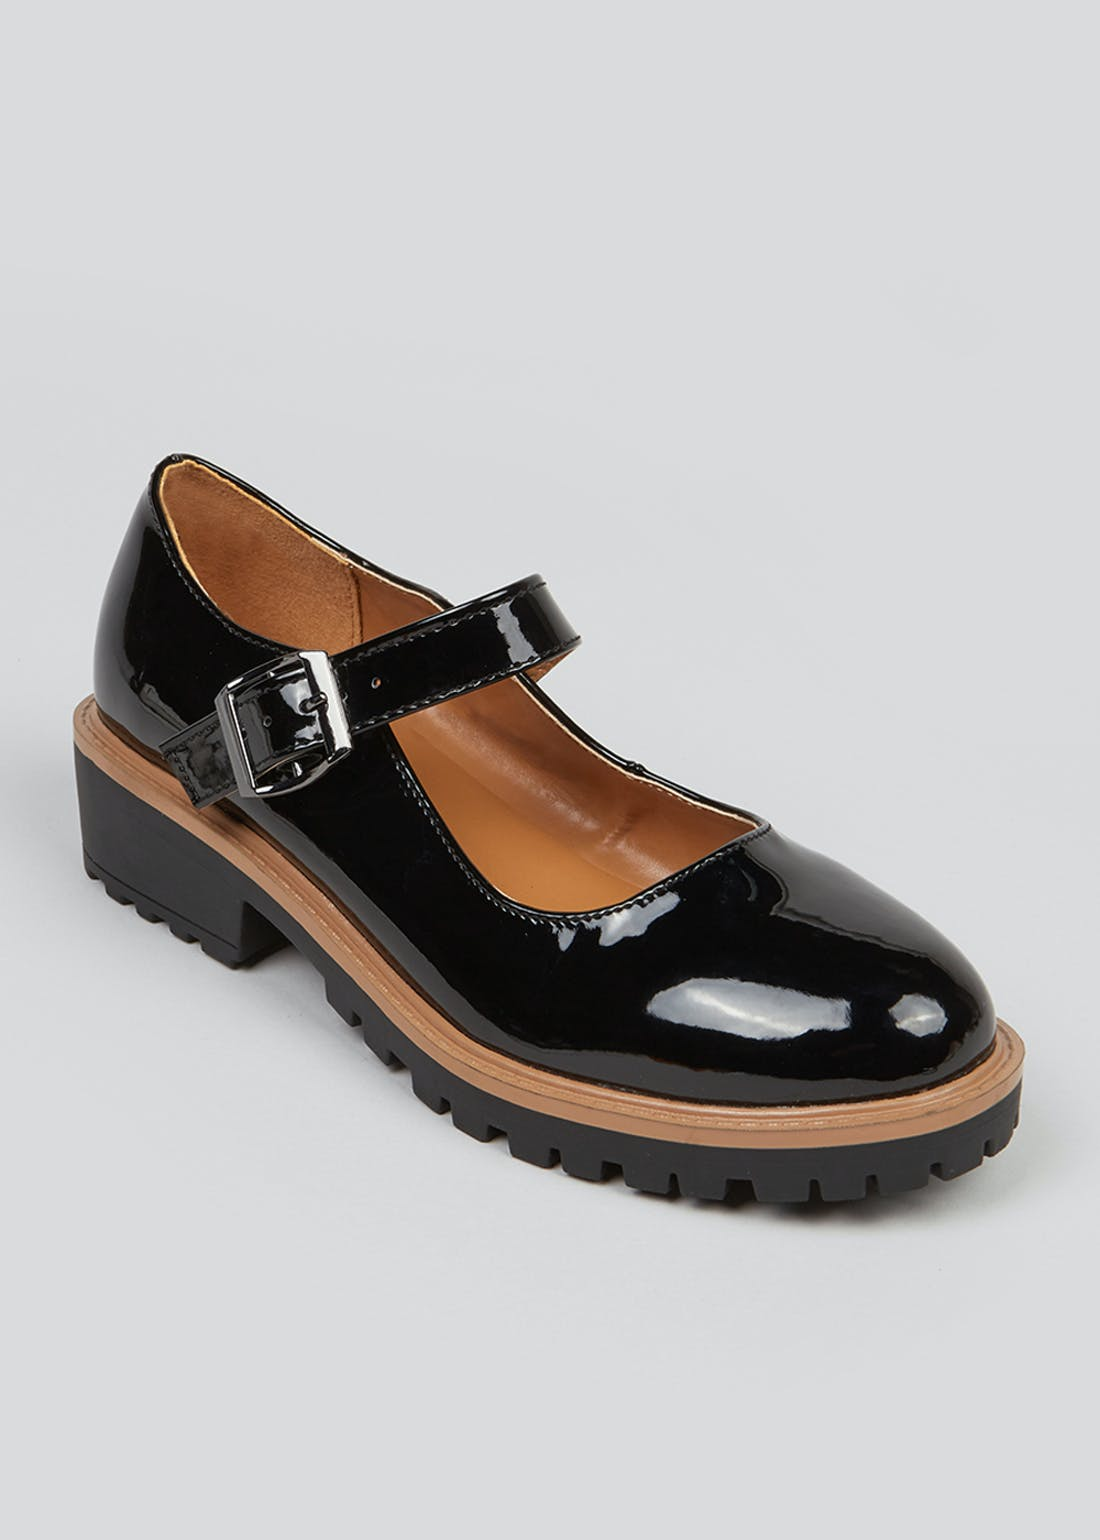 Black Patent Mary Jane Shoes